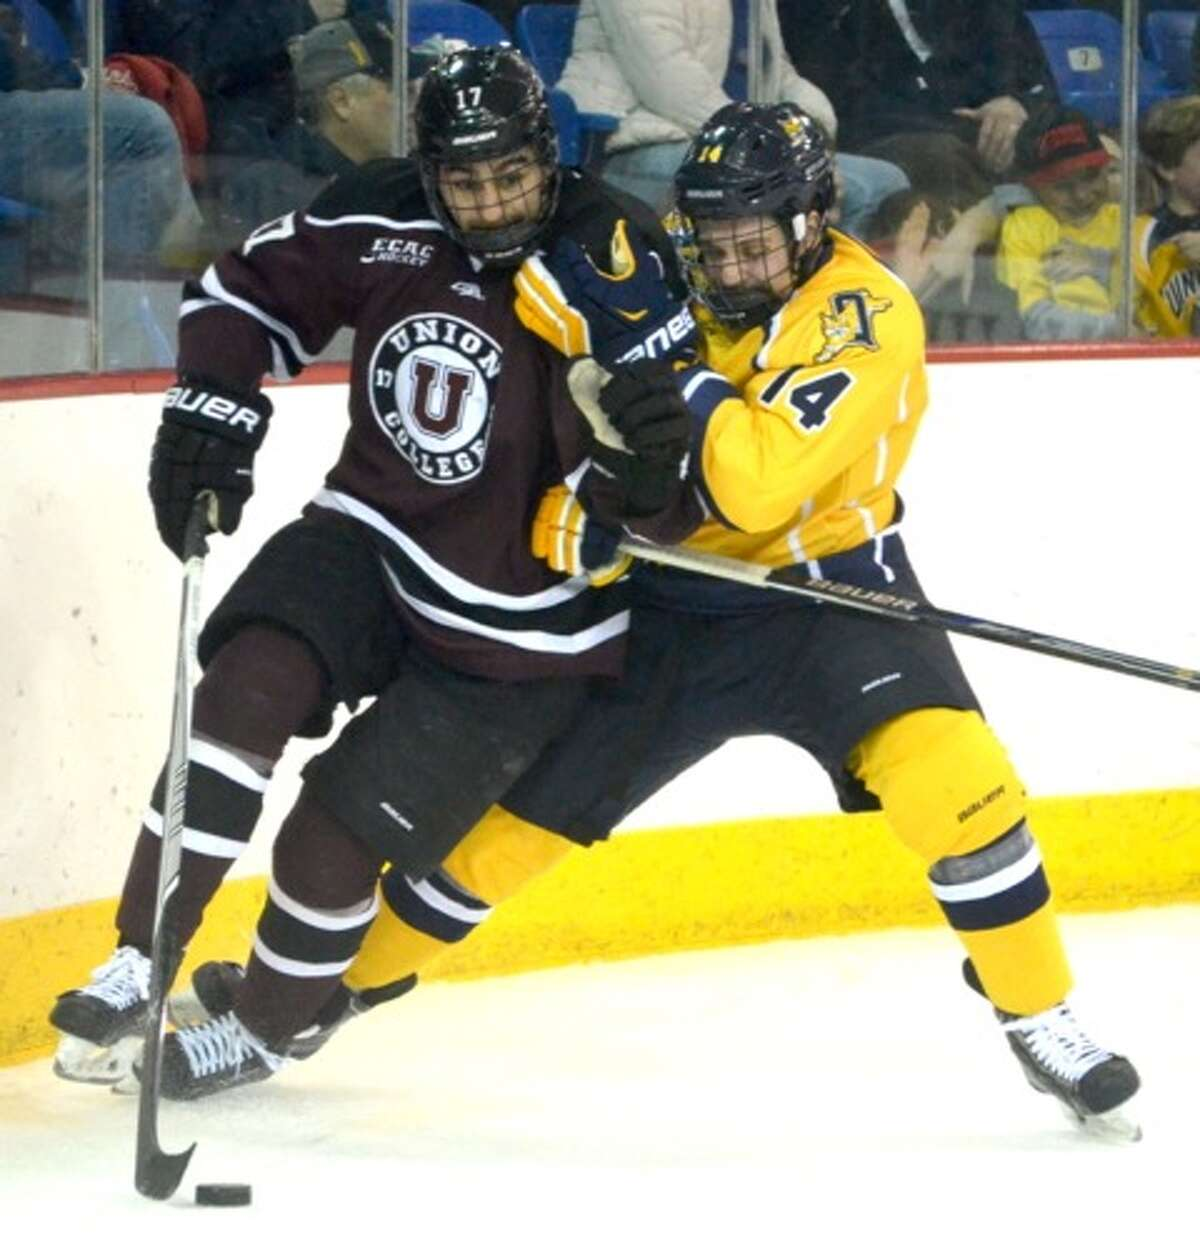 Union?s Derek Ciampini wards off Quinnipiac defensman Derek Smith in the second period of their ECAC quarterfinal on Saturday, March 14, 2015. (Nick Solari / Special to the Times Union)